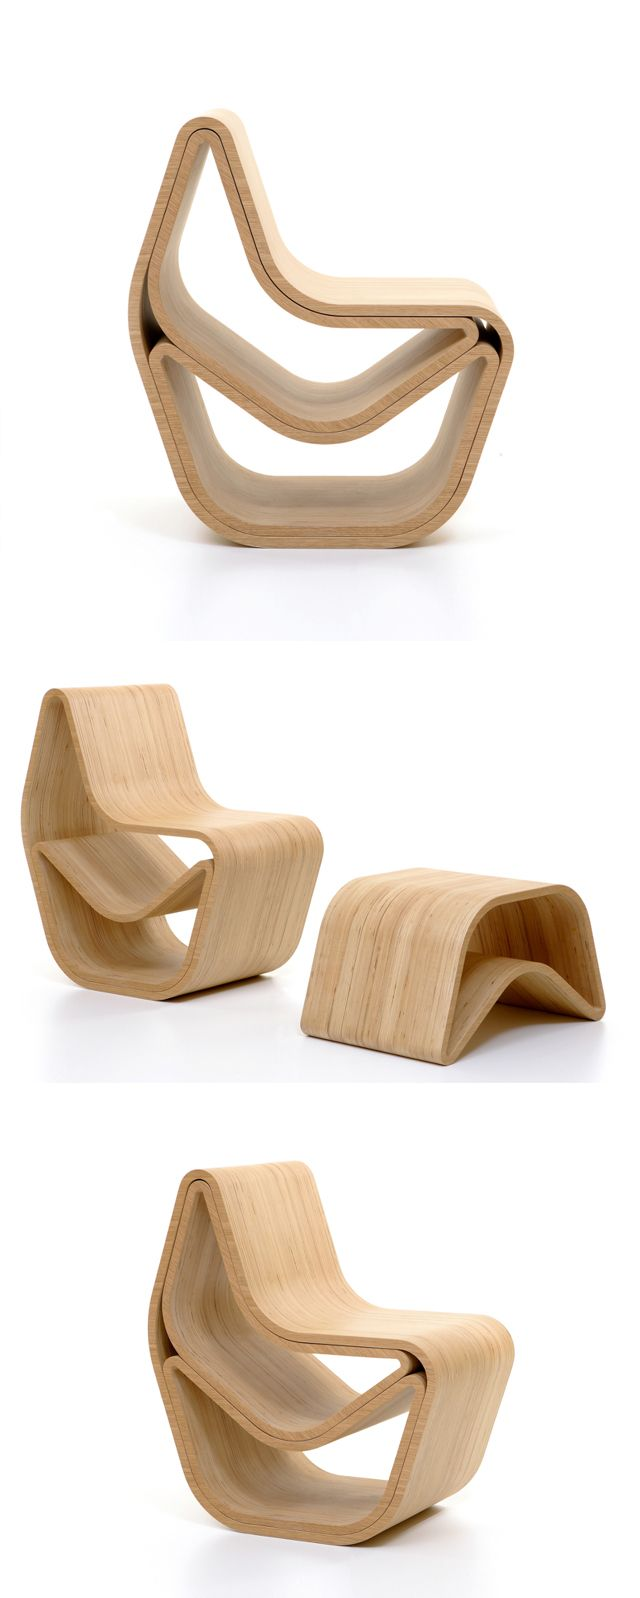 Comfortable cardboard chair designs - Gval Is A Product That Brings Surprising And Playful Use To An Object As Ordinary As Everyday S Chair The Form Of The Chair Is A Careful Balance Of Many